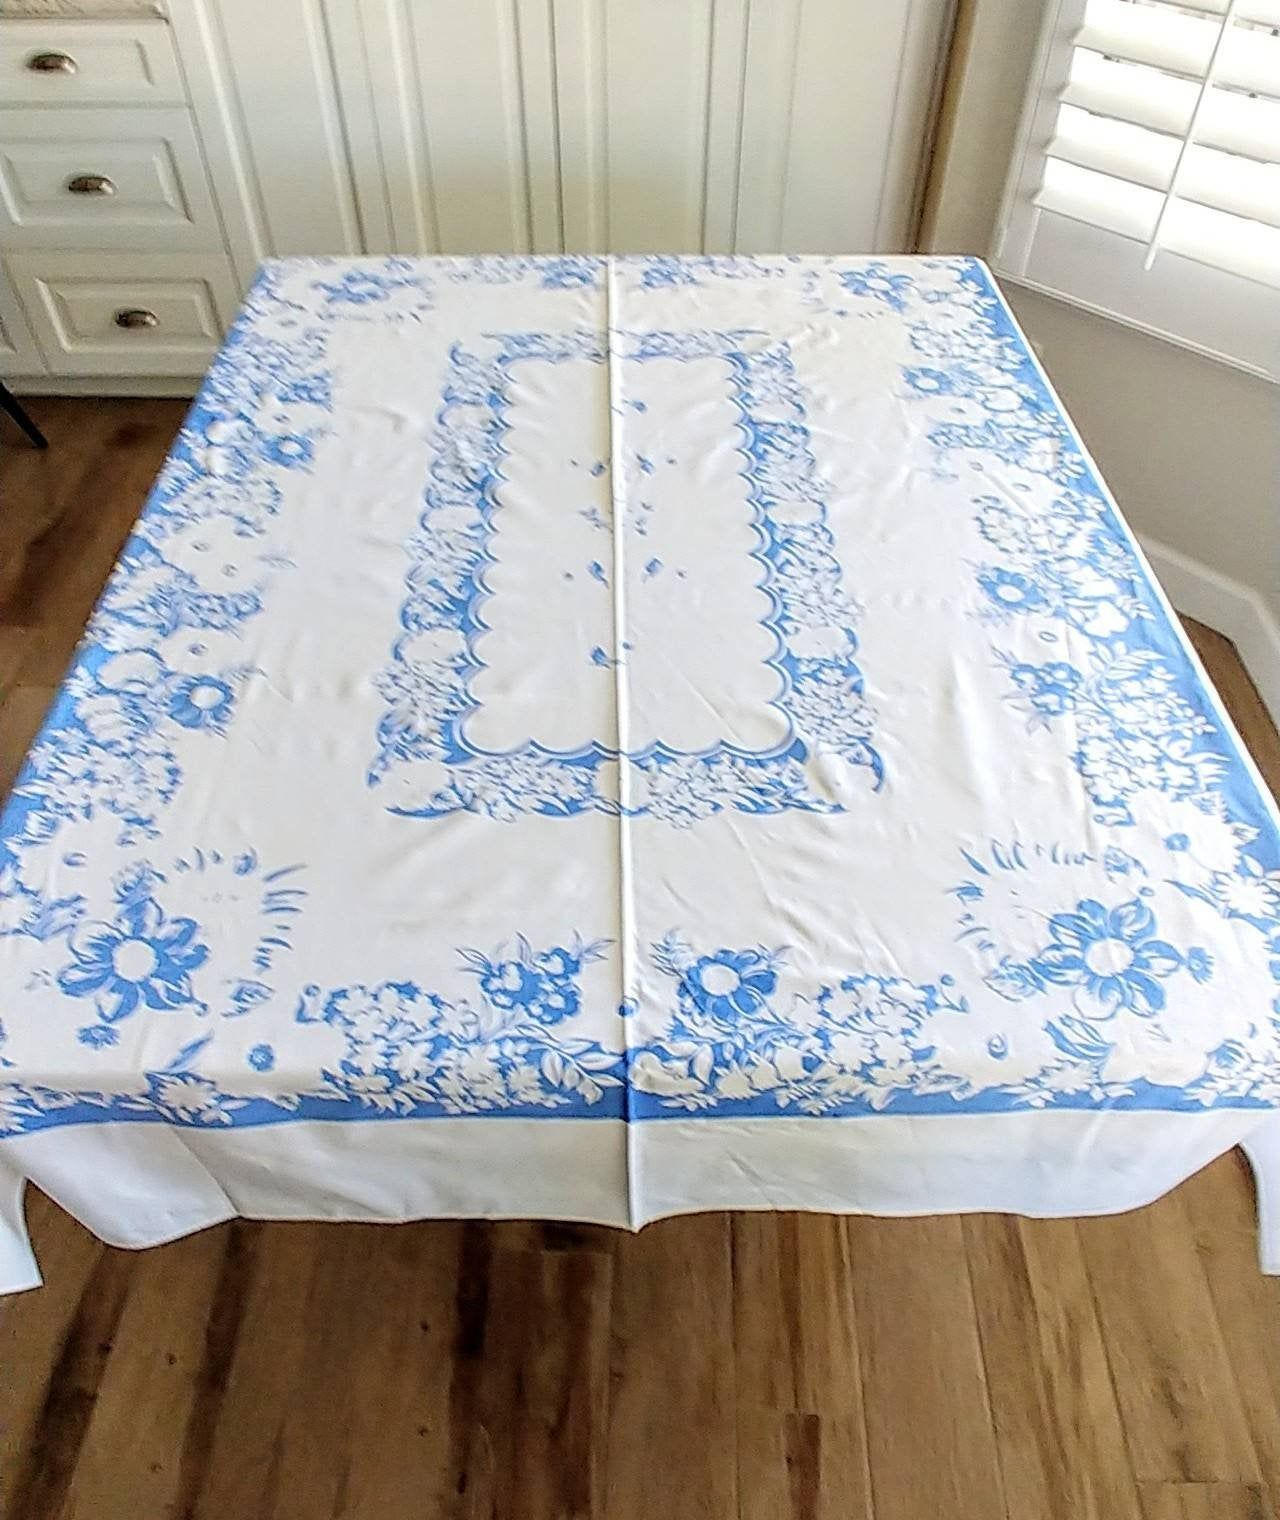 Beautiful 1950 Vintage Cotton Print Tablecloth White With Etsy In 2020 Farmhouse Tablecloths Country Kitchen Decor Country Blue